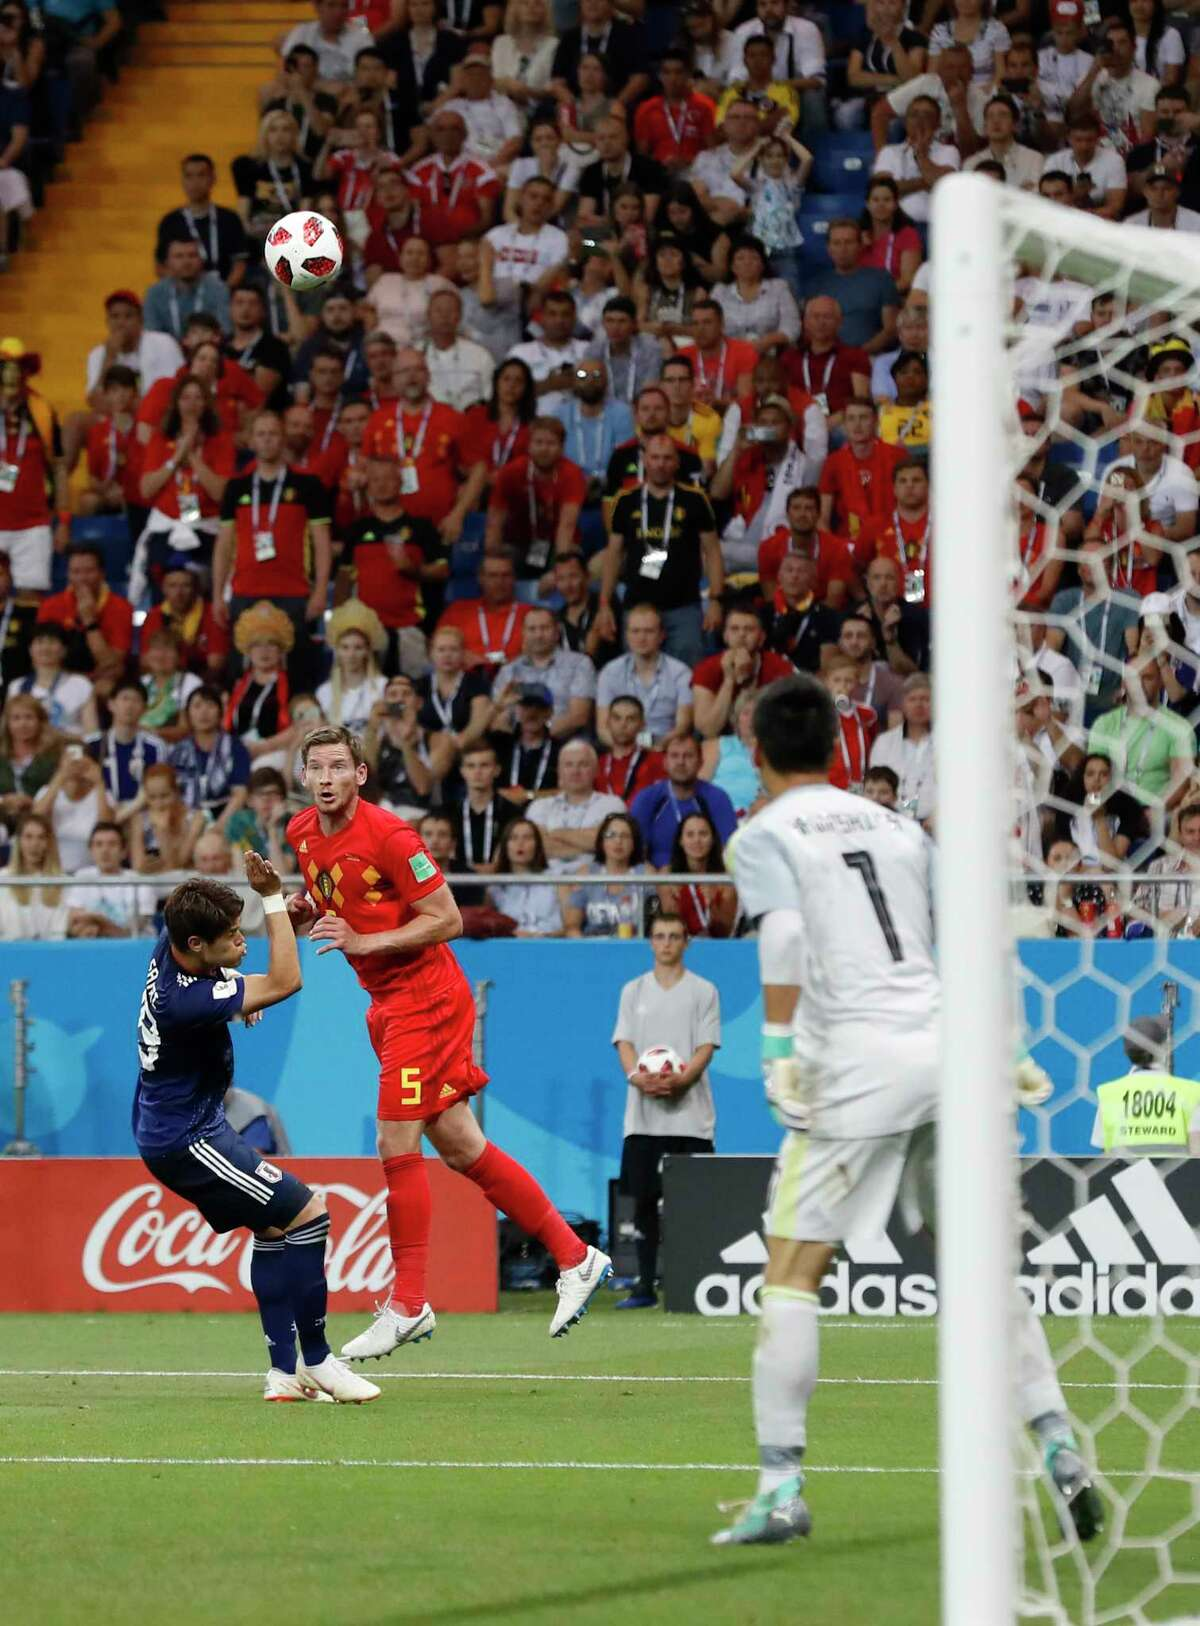 Belgium's Jan Vertonghen, second left, heads the ball to score his side's first goal during the round of 16 match between Belgium and Japan at the 2018 soccer World Cup in the Rostov Arena, in Rostov-on-Don, Russia, Monday, July 2, 2018. (AP Photo/Rebecca Blackwell)